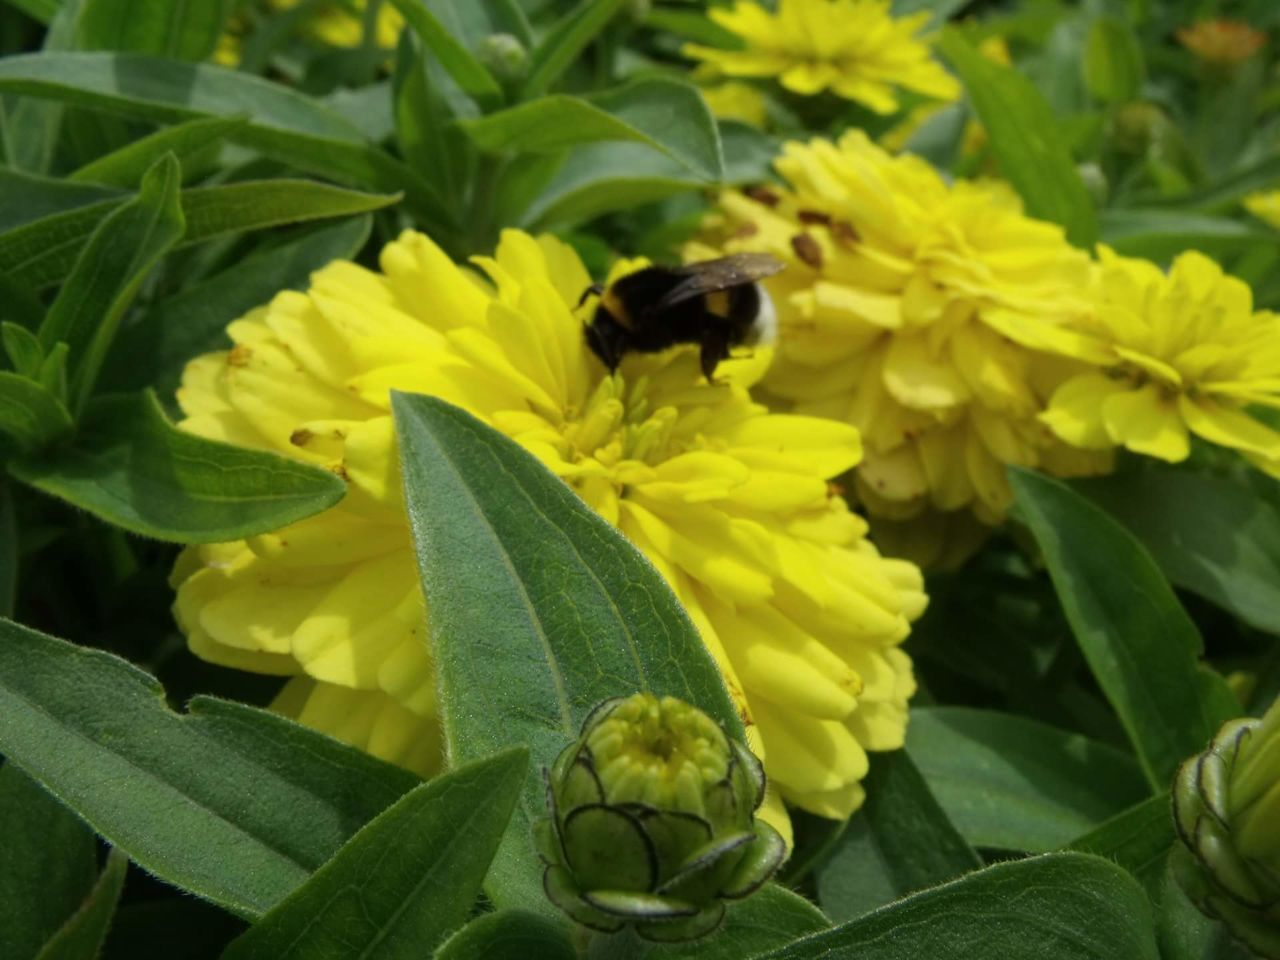 insect, one animal, animal themes, flower, animals in the wild, growth, leaf, plant, nature, petal, fragility, yellow, outdoors, bee, freshness, day, beauty in nature, green color, animal wildlife, no people, flower head, close-up, pollination, blooming, bumblebee, buzzing